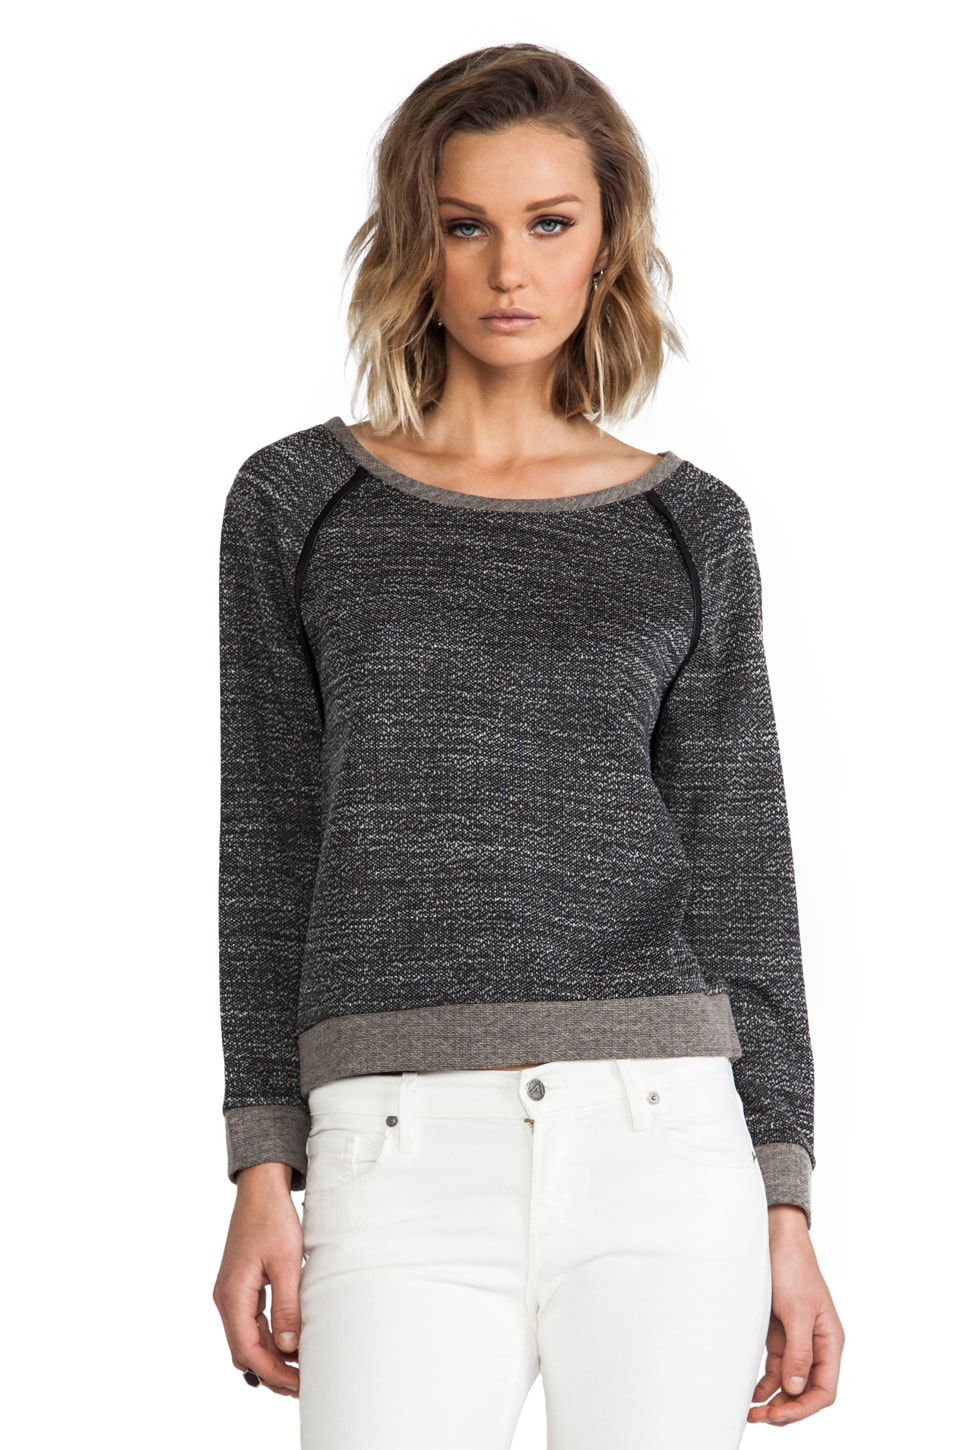 Alice + Olivia Long Sleeve Raglan With Leather Elbow Patch in Black/White